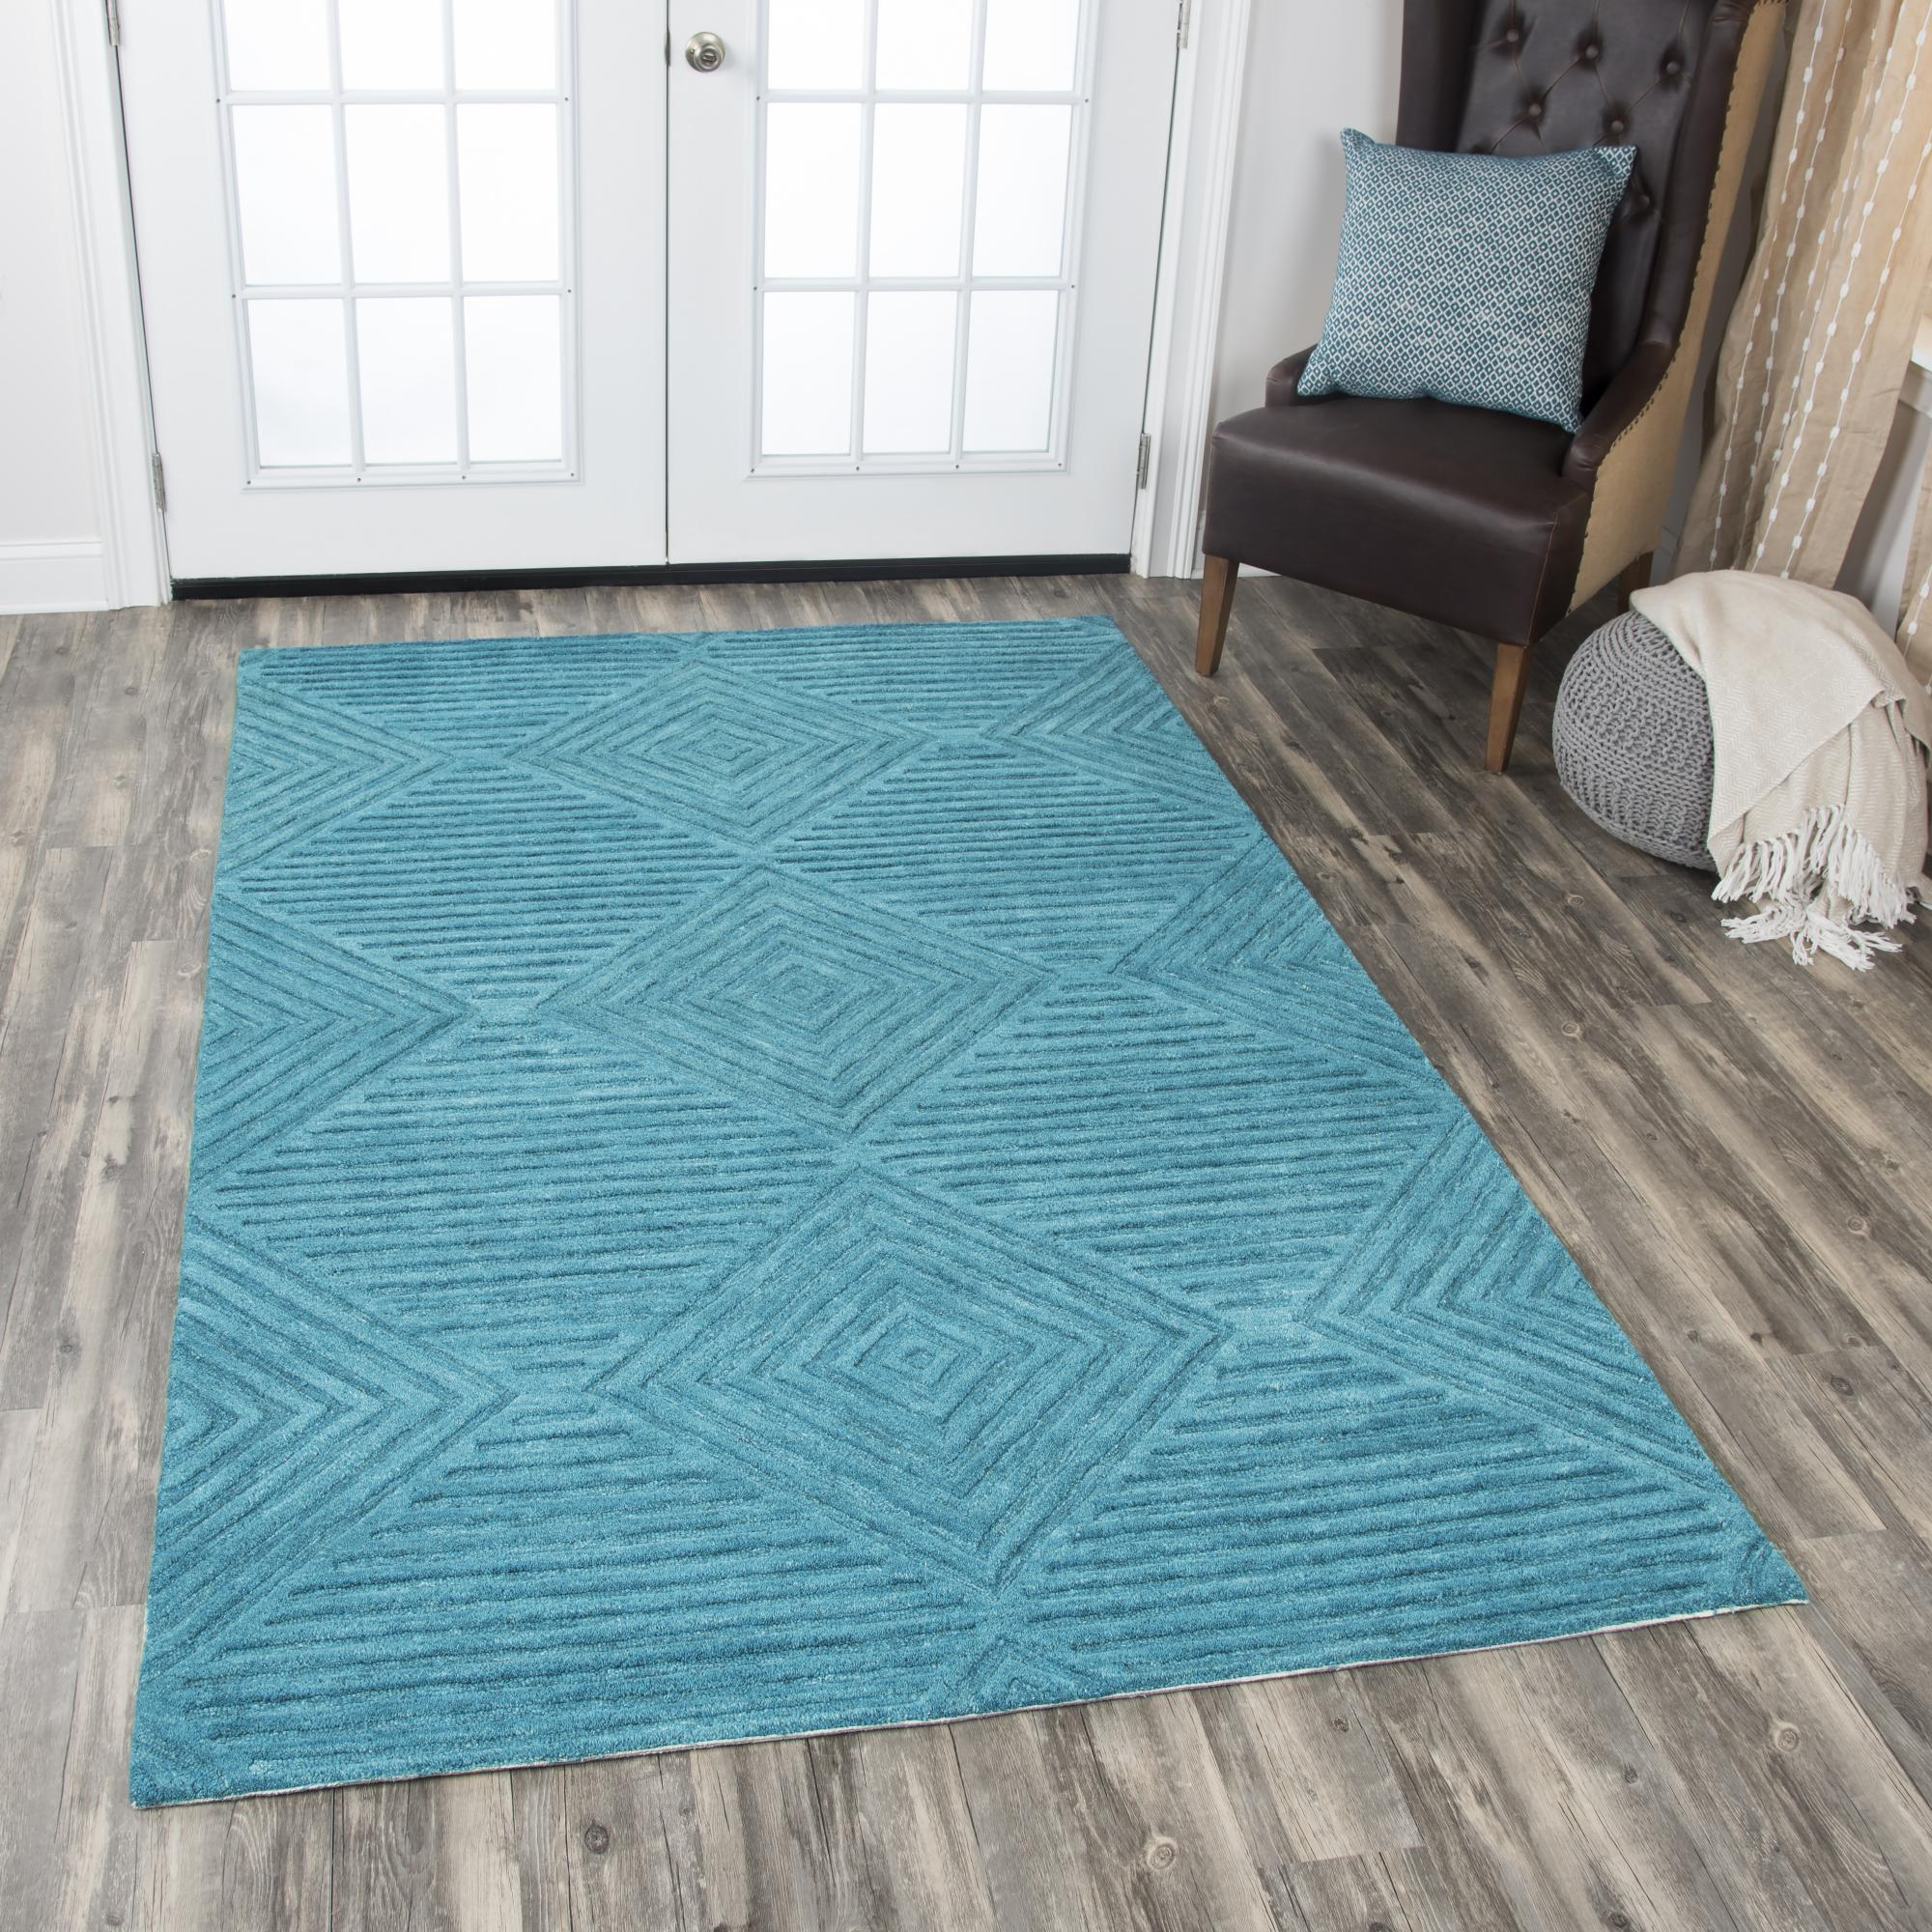 Rizzy Home ID918A Teal 10' x 13' Hand-Tufted Area Rug